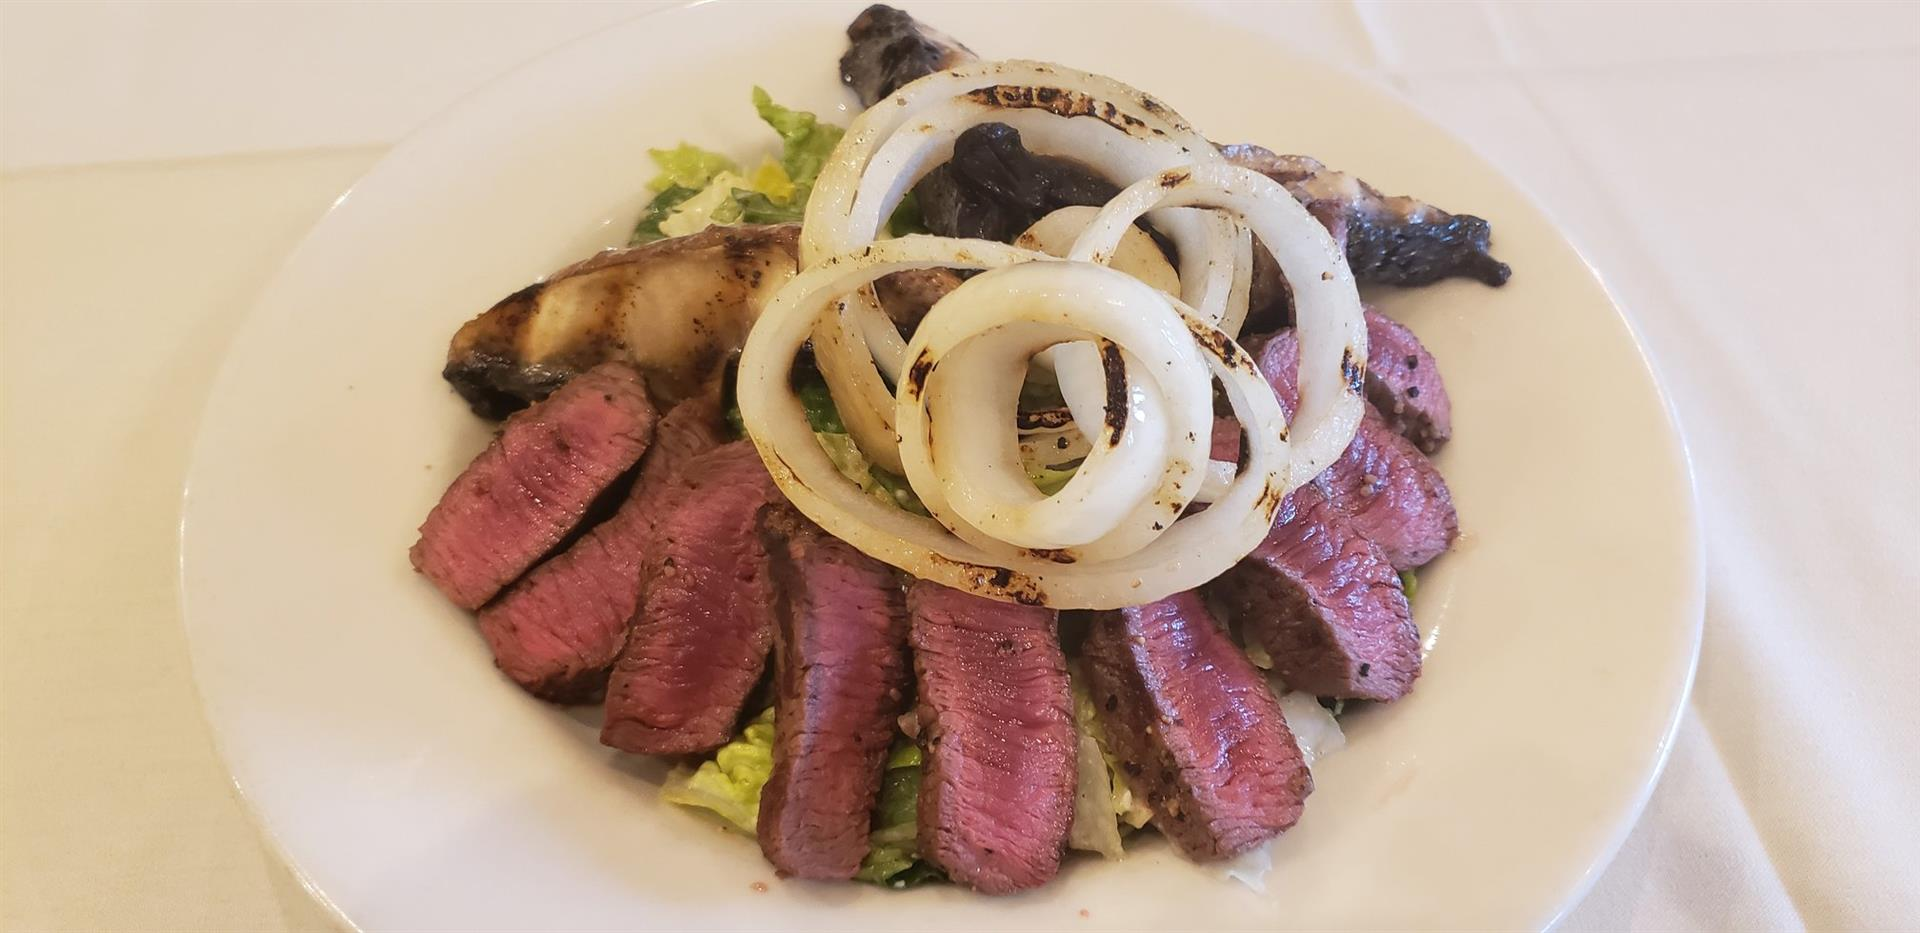 Sliced filet mignon salad with grilled onions